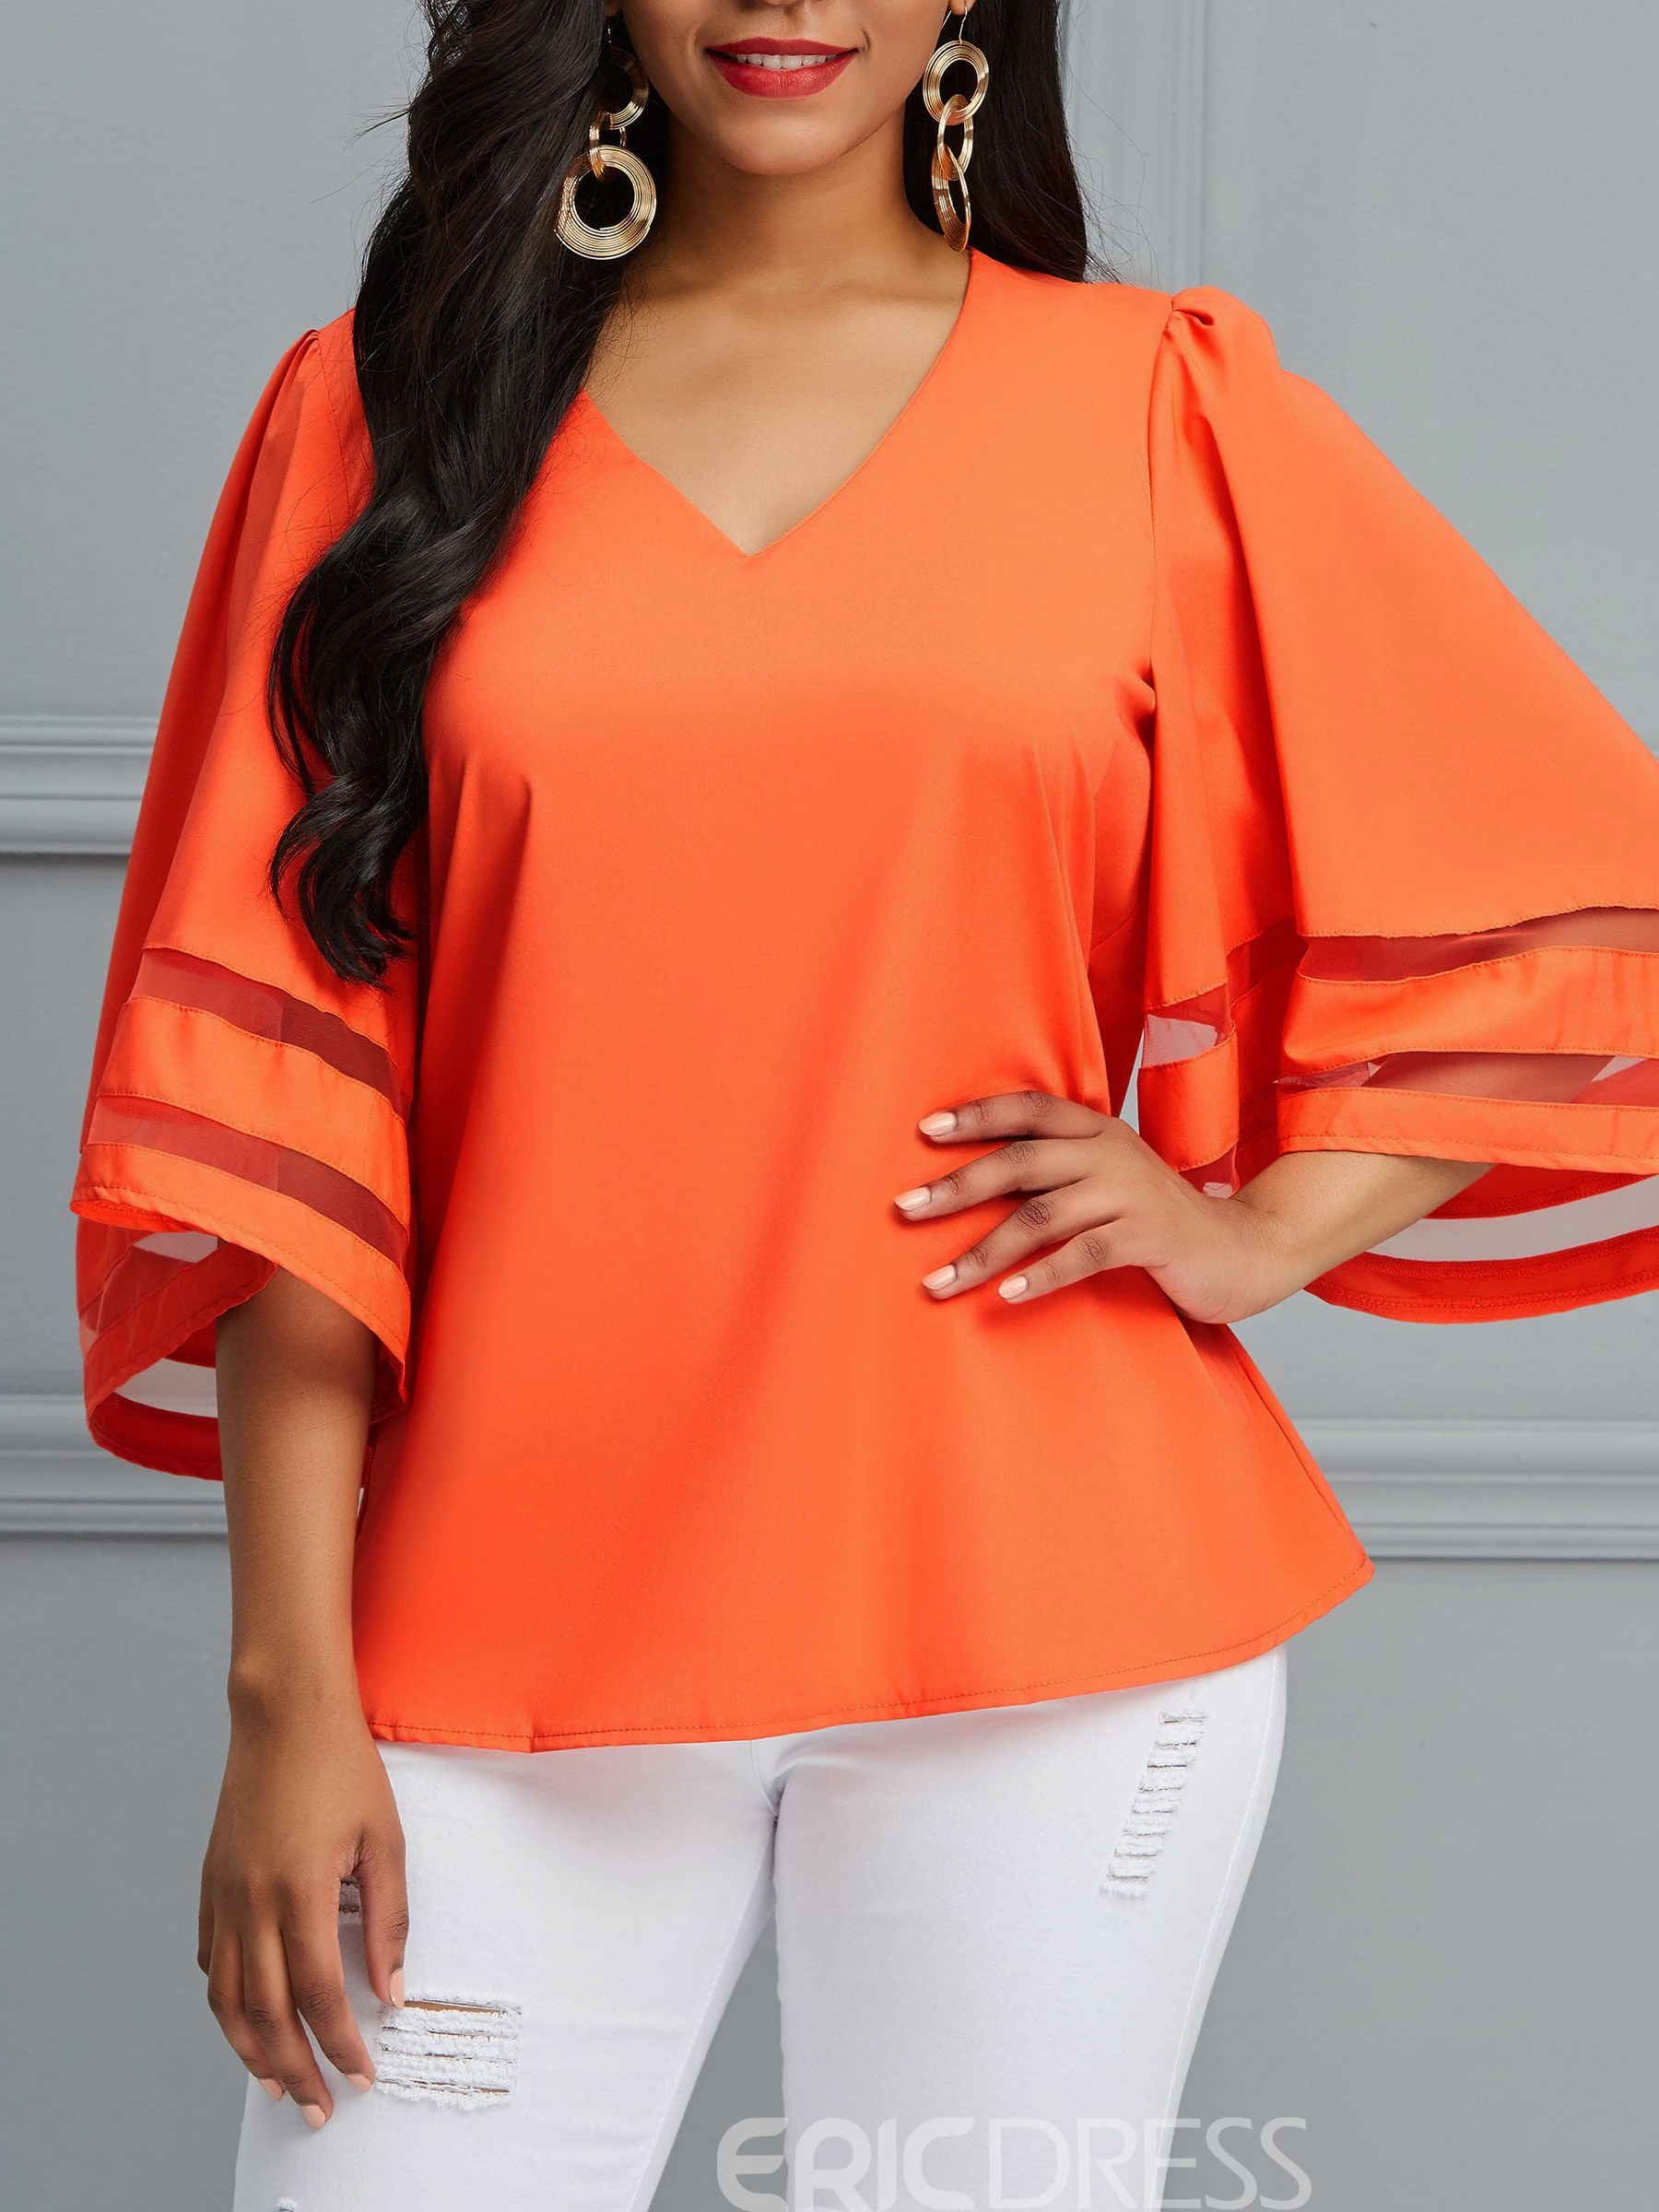 Ericdress Notch-V Patchwork 3/4 Length Sleeves Blouse